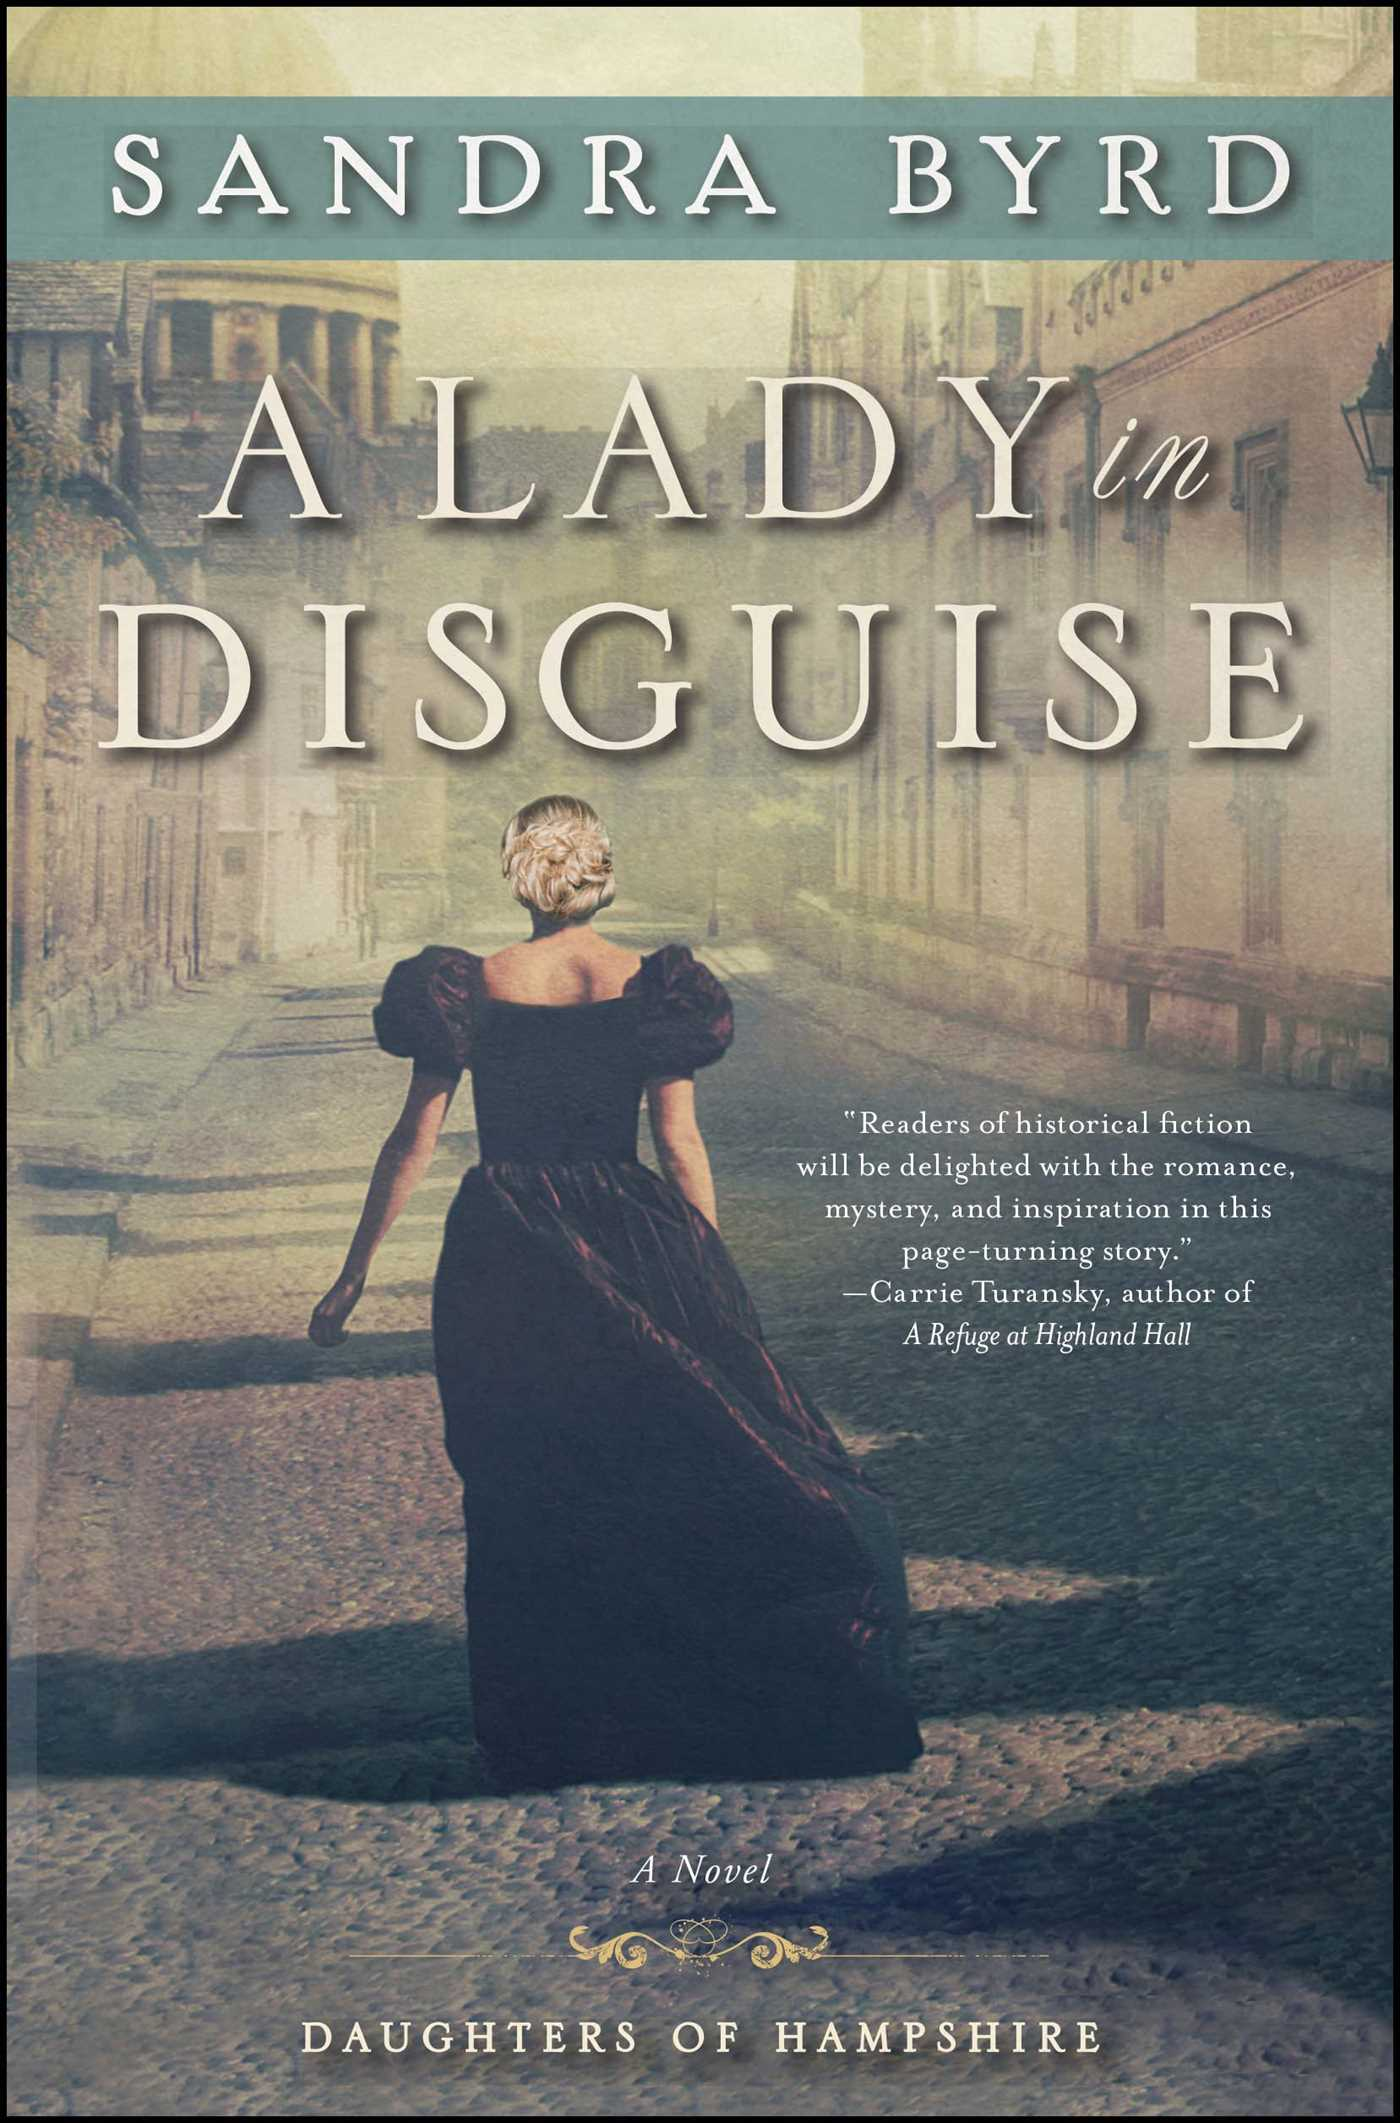 A lady in disguise 9781476717937 hr